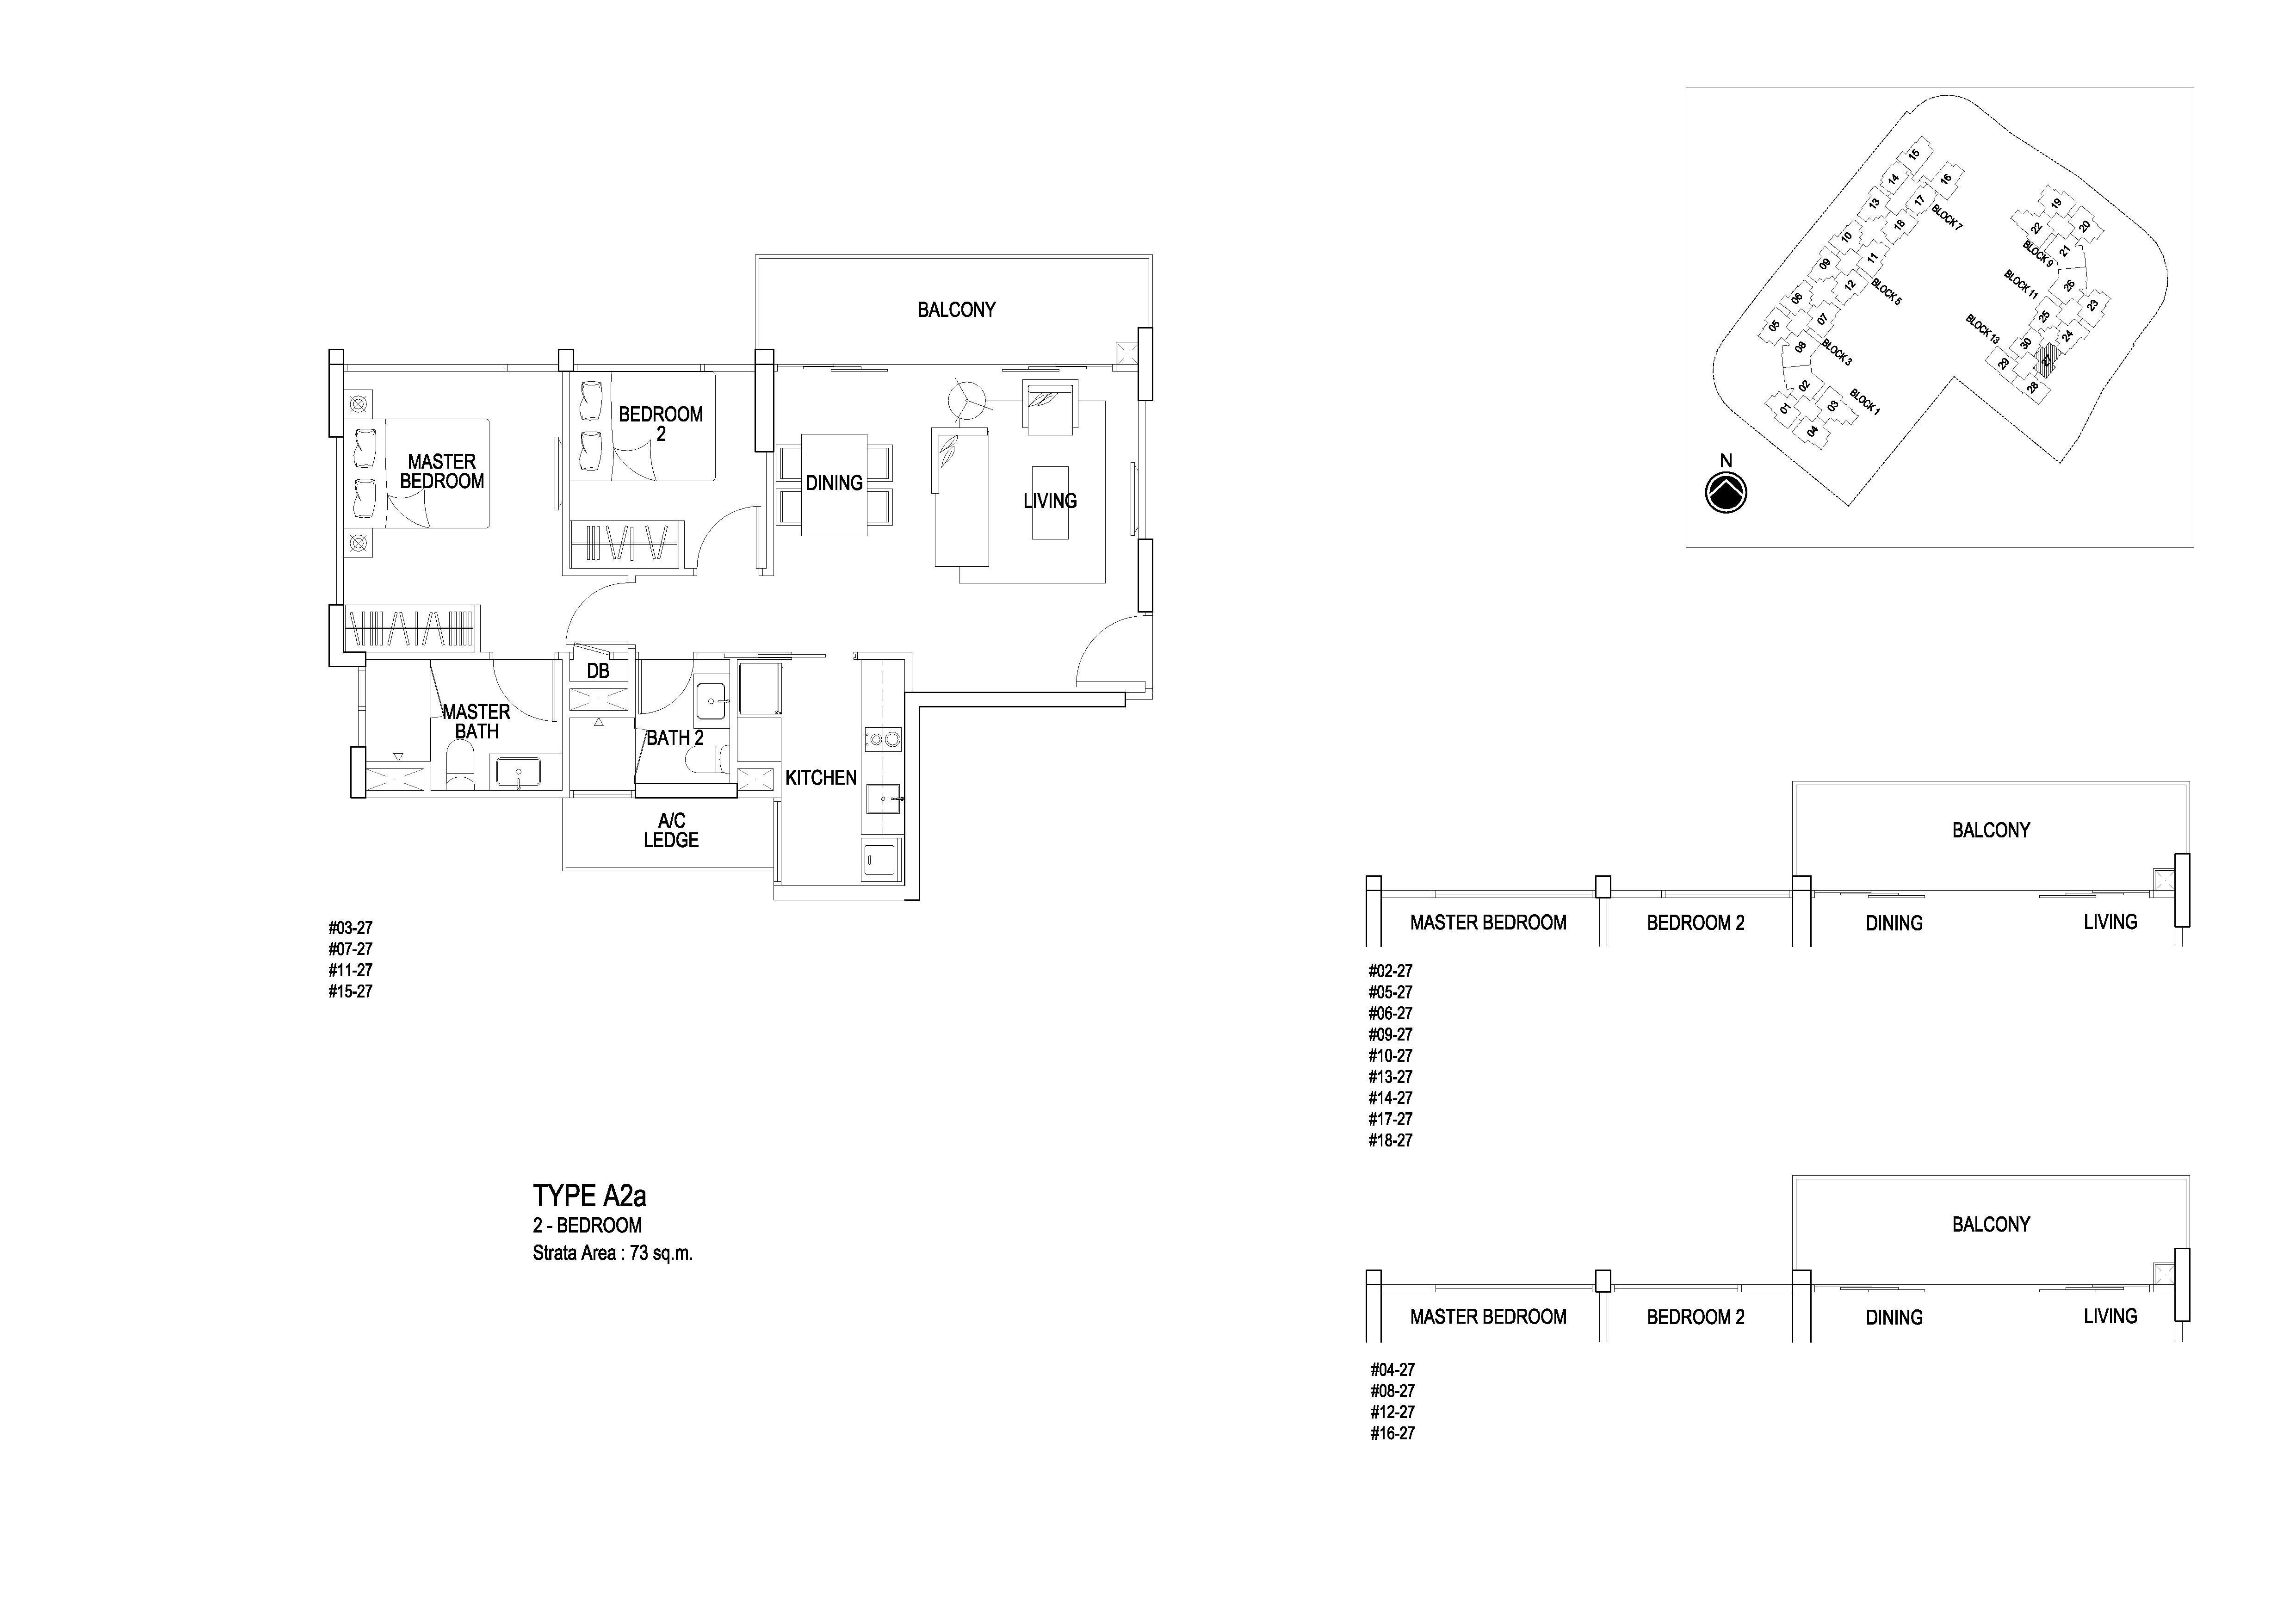 Flo Residence 2 Bedroom Floor Plans Type A2a